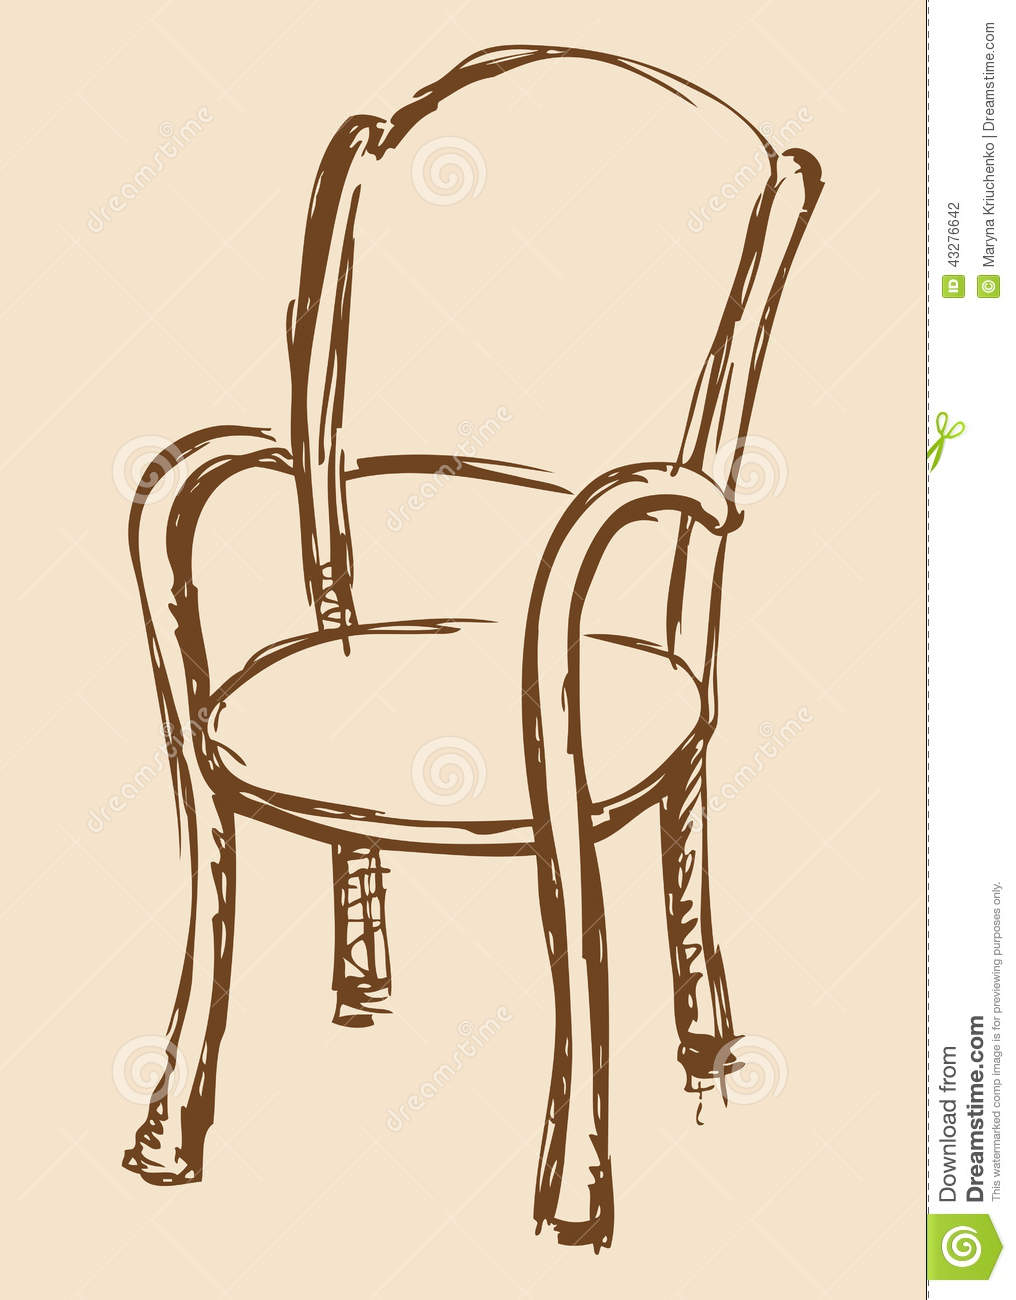 Vector Drawing Wooden Chair With Armrests Stock Vector  : vector drawing wooden chair armrests monochrome line sketches style pen paper chipped soft cloth used cafes 43276642 from www.dreamstime.com size 1016 x 1300 jpeg 102kB